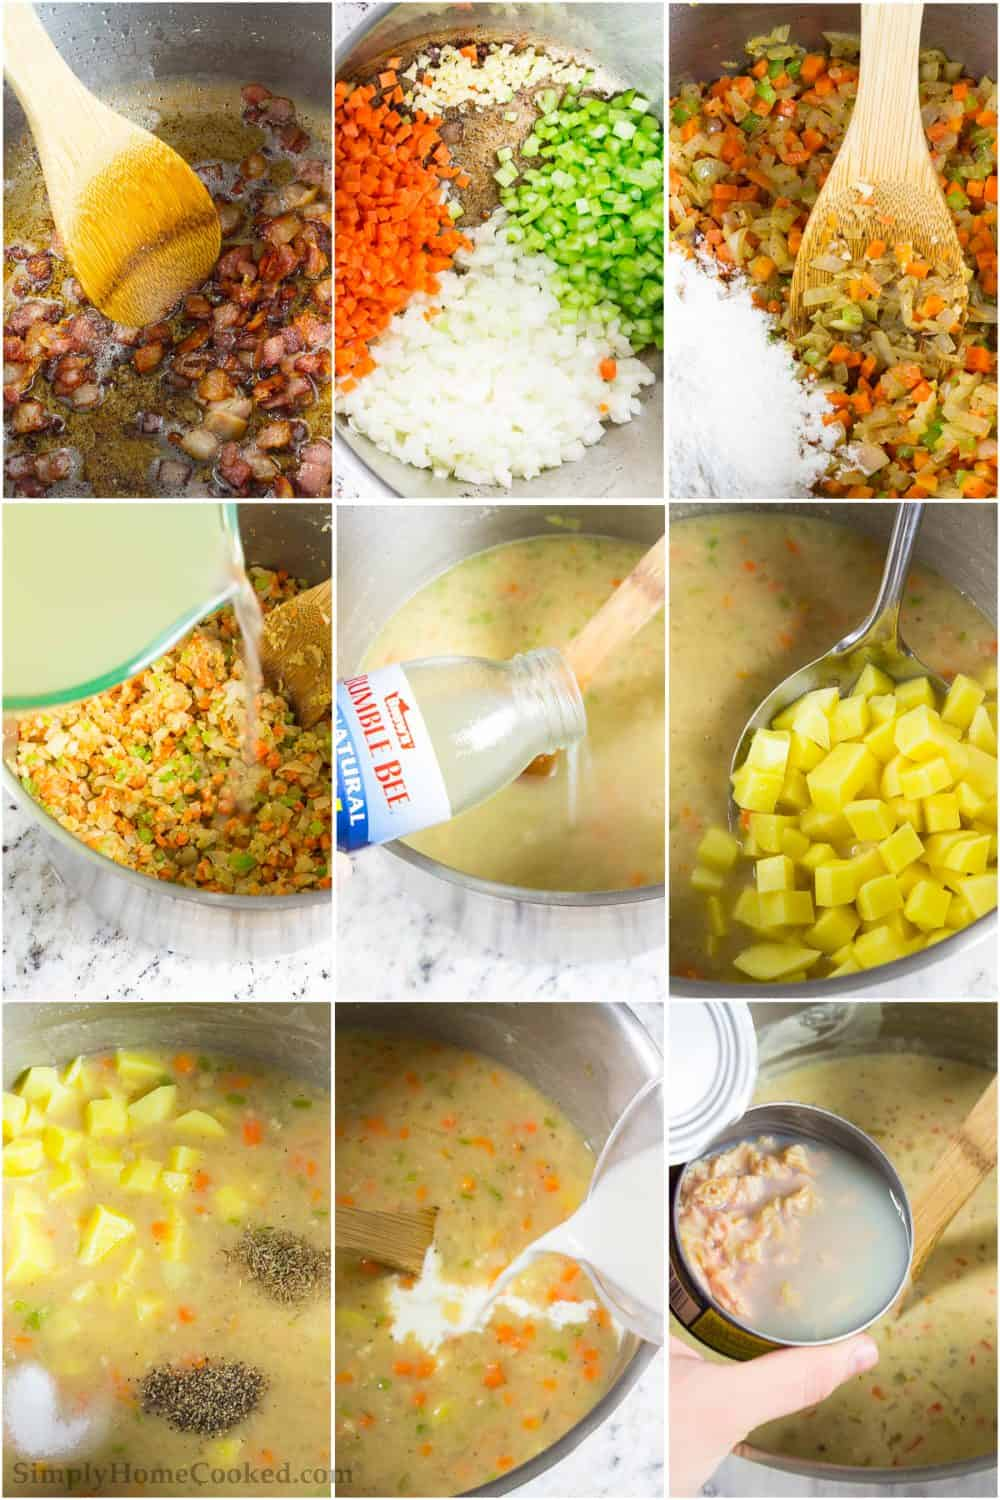 Step by step photo collage of preparing the vegetables and broths to create the clam chowder soup recipe